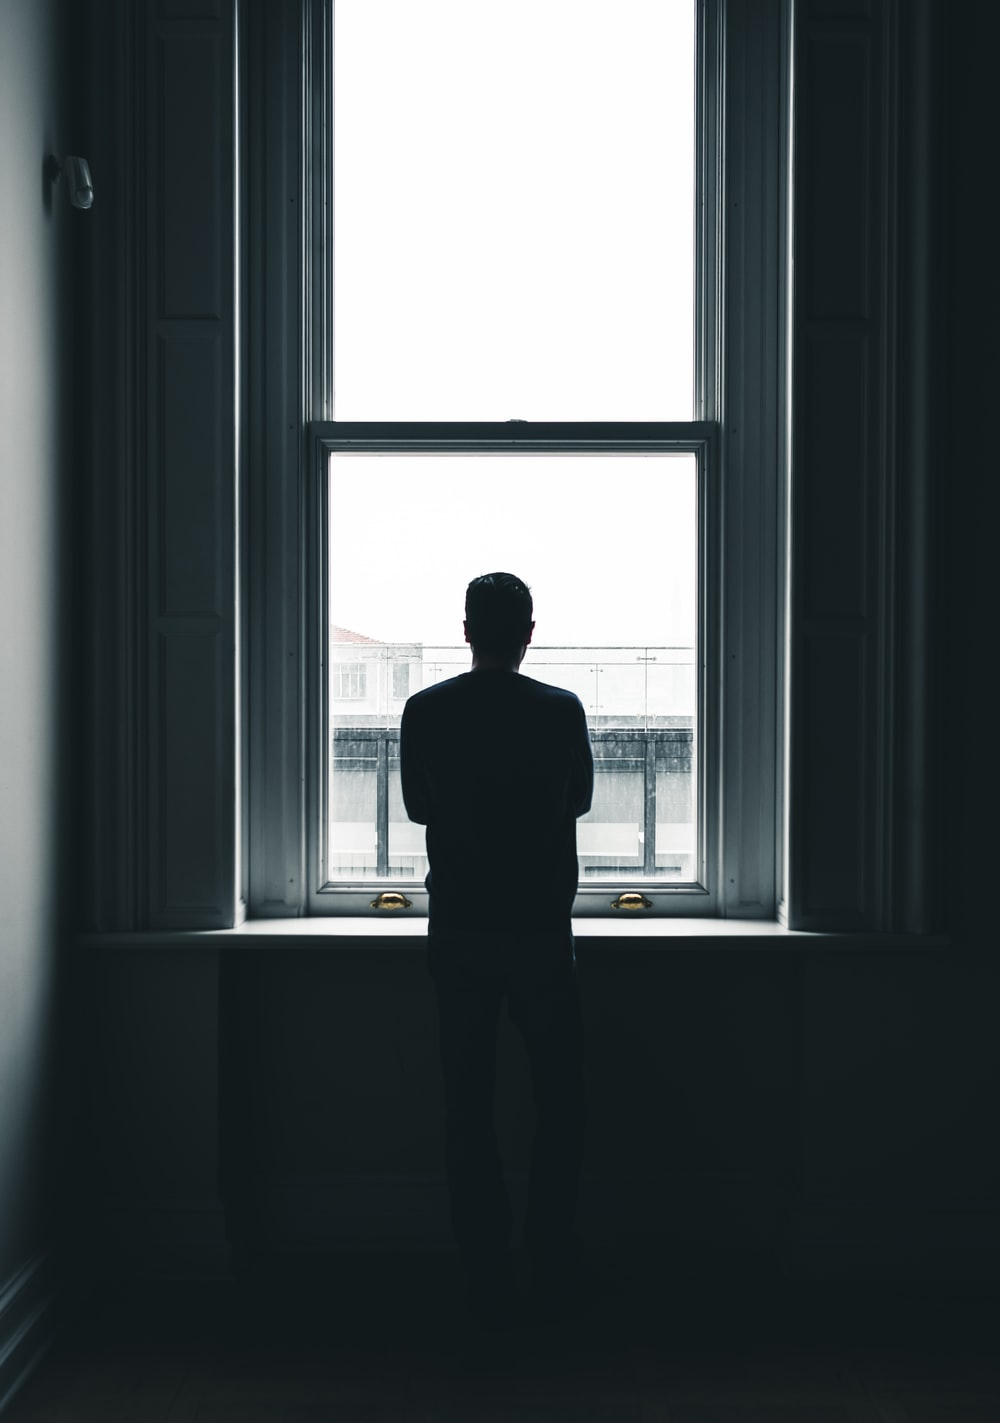 silhouette of person standing in front of window at daytime